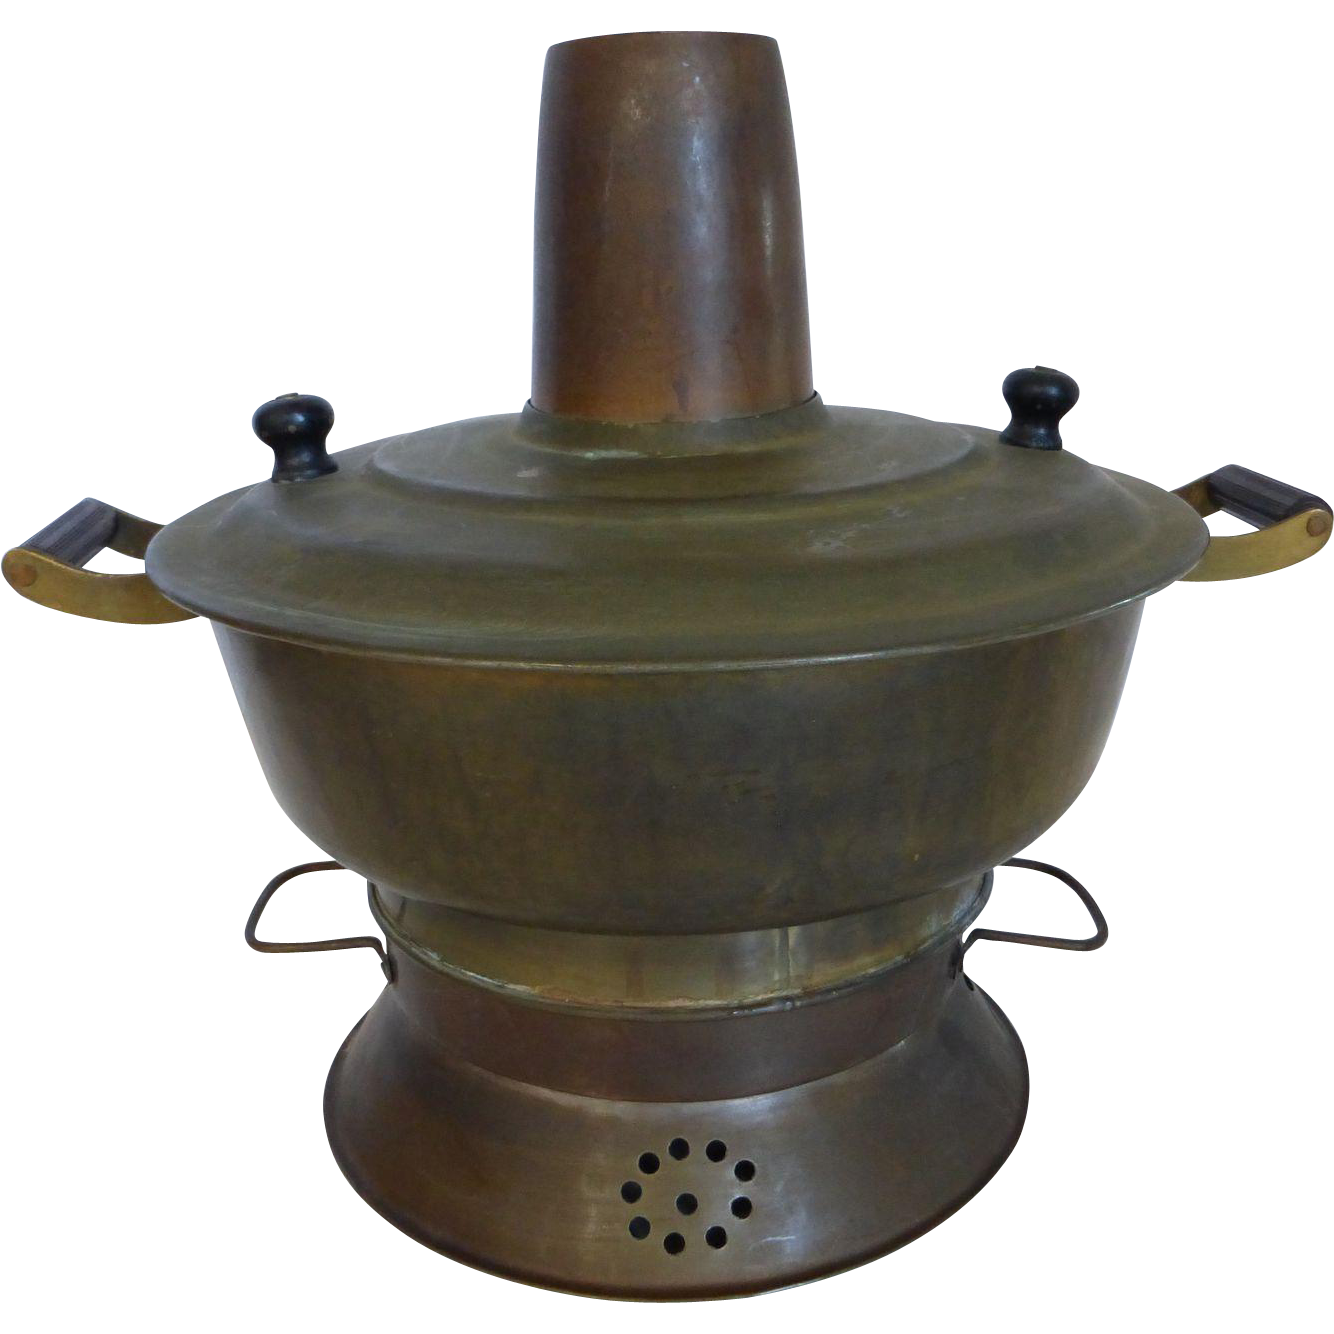 Antique Chinese Brass Hot Pot Cooking Pot from historique ...